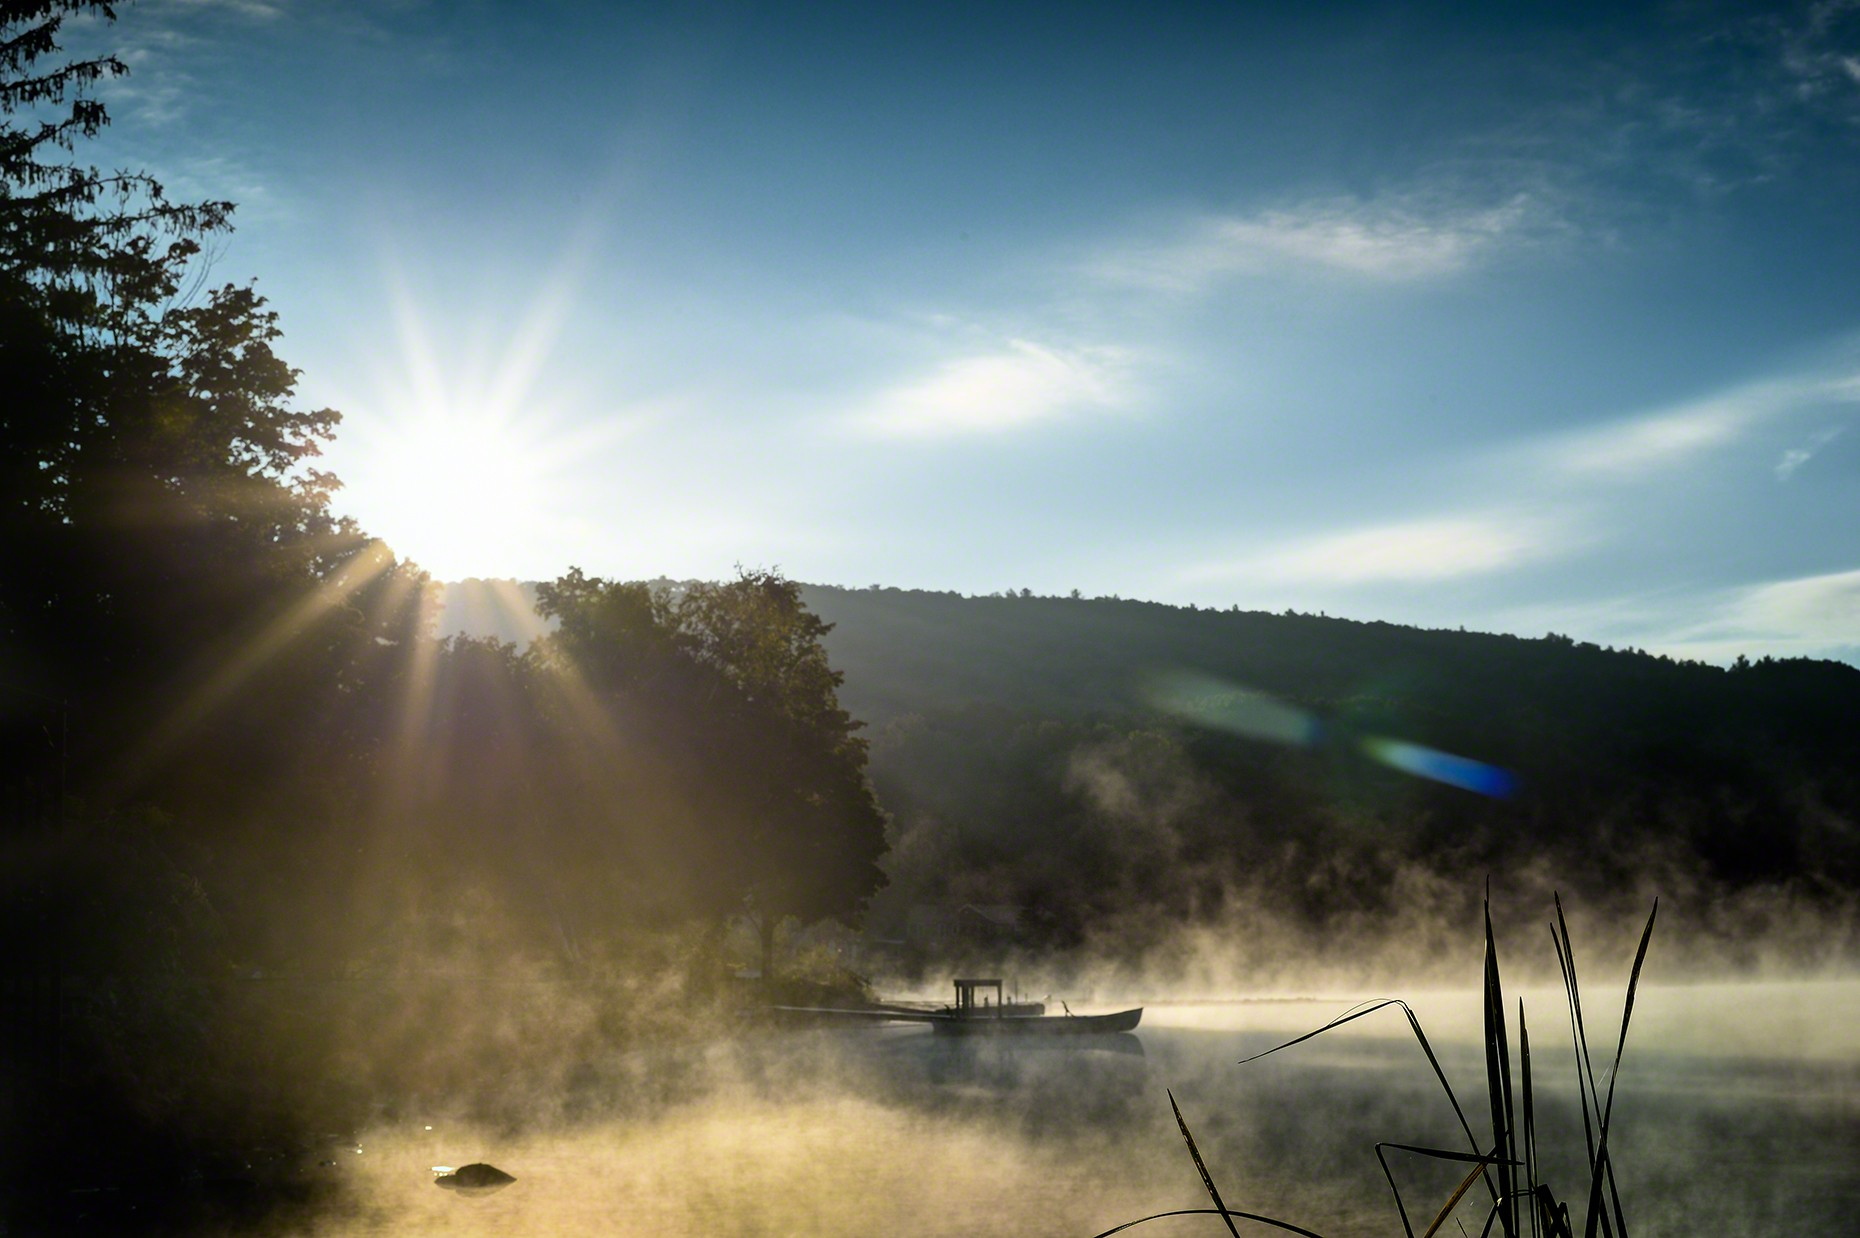 FritzImages | Travel and Outdoor Digital Images | image name = 20140919 0306 NY Morning From Glass Lake North End iop